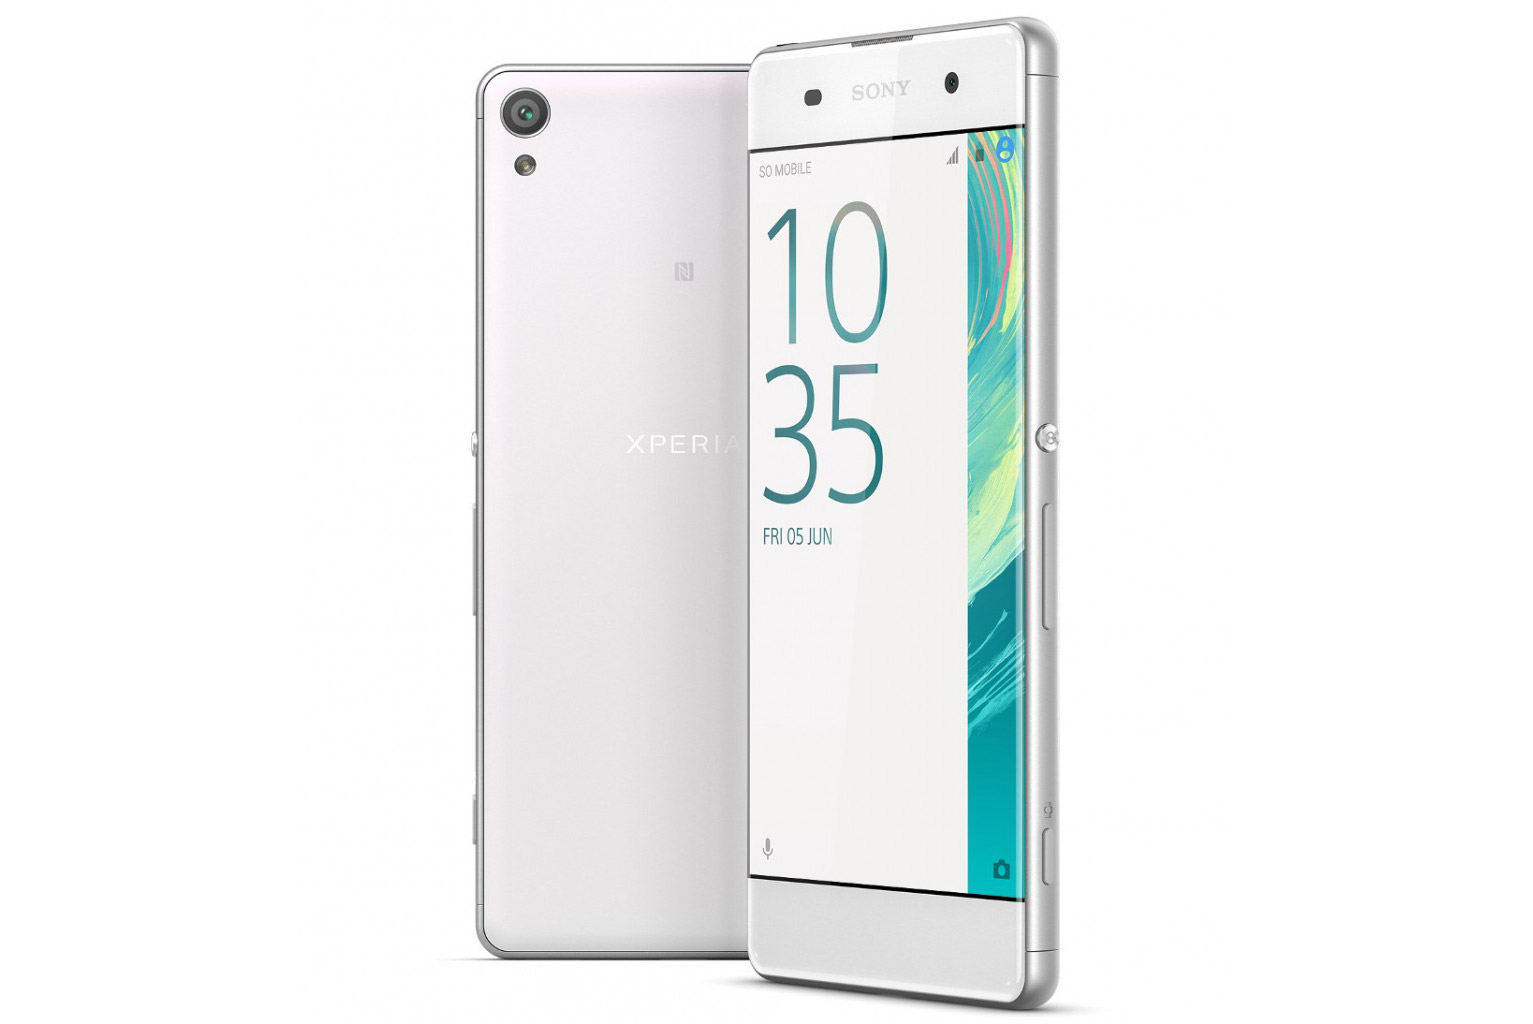 sony announces new xperia x series at mwc 2016 with 3 smartphones phonebunch. Black Bedroom Furniture Sets. Home Design Ideas